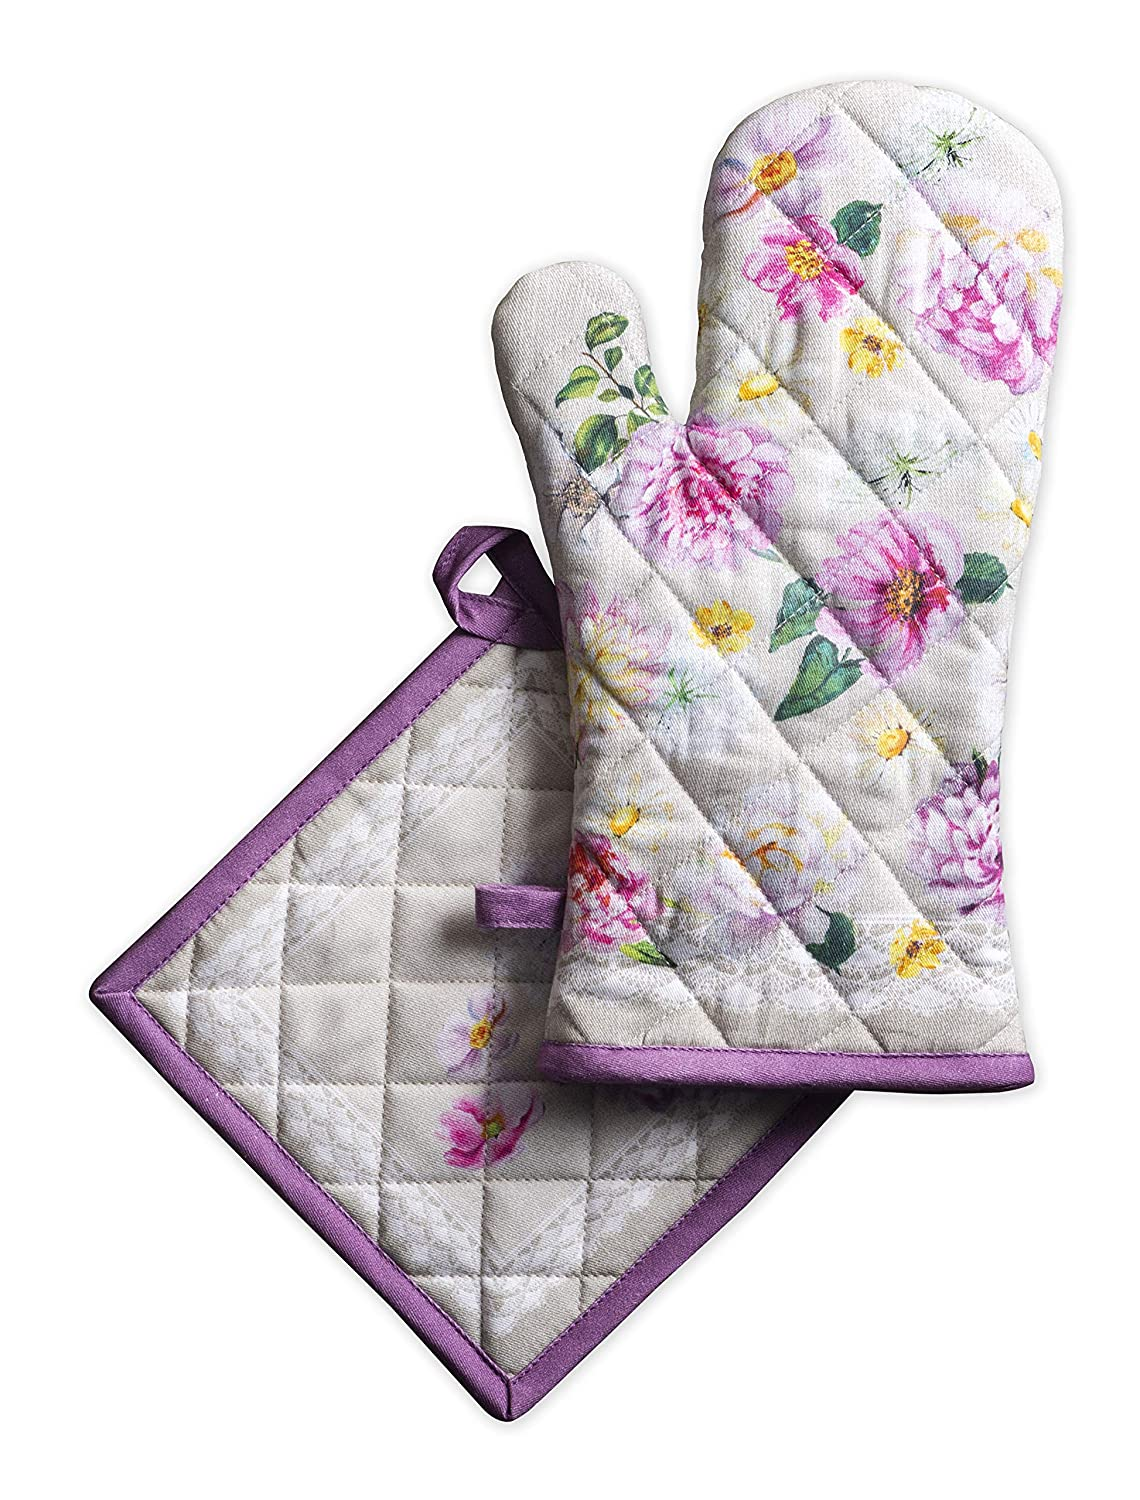 Maison d' Hermine Pivoine 100% Cotton Set of Oven Mitt (7.5 Inch by 13 Inch) and Pot Holder (8 Inch by 8 Inch).